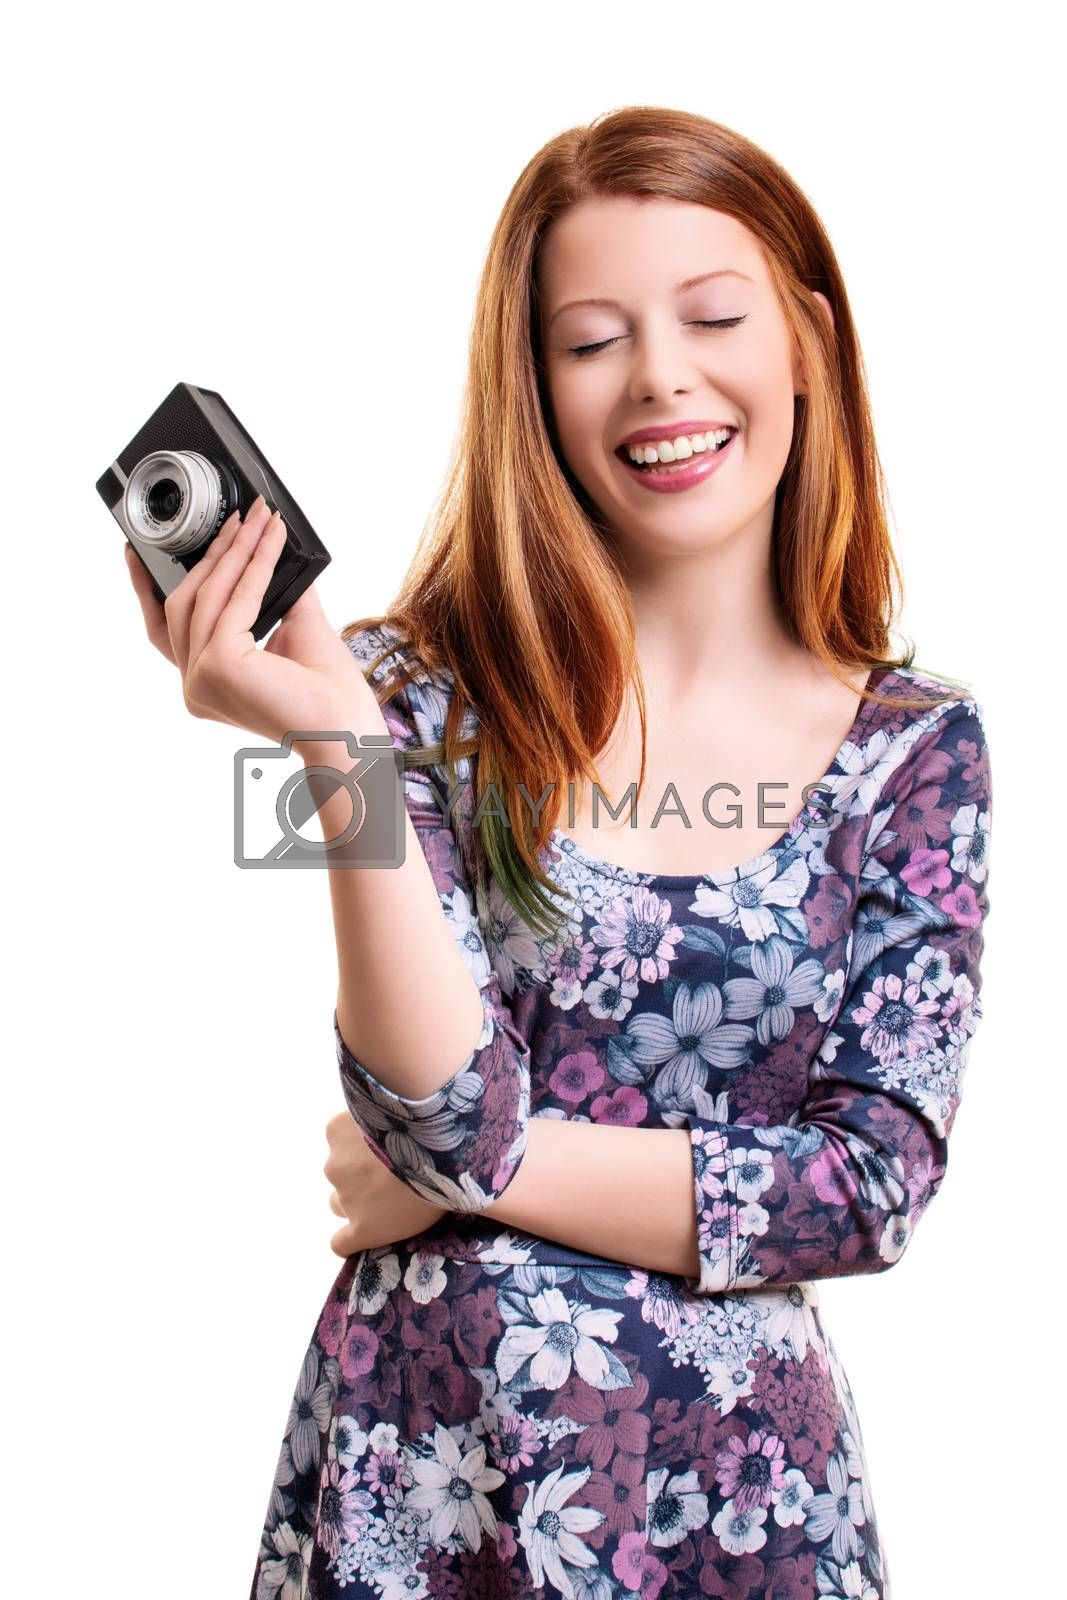 Beautiful smiling young girl with closed eyes, looking pleased and happy, holding an old camera, isolated on white background.